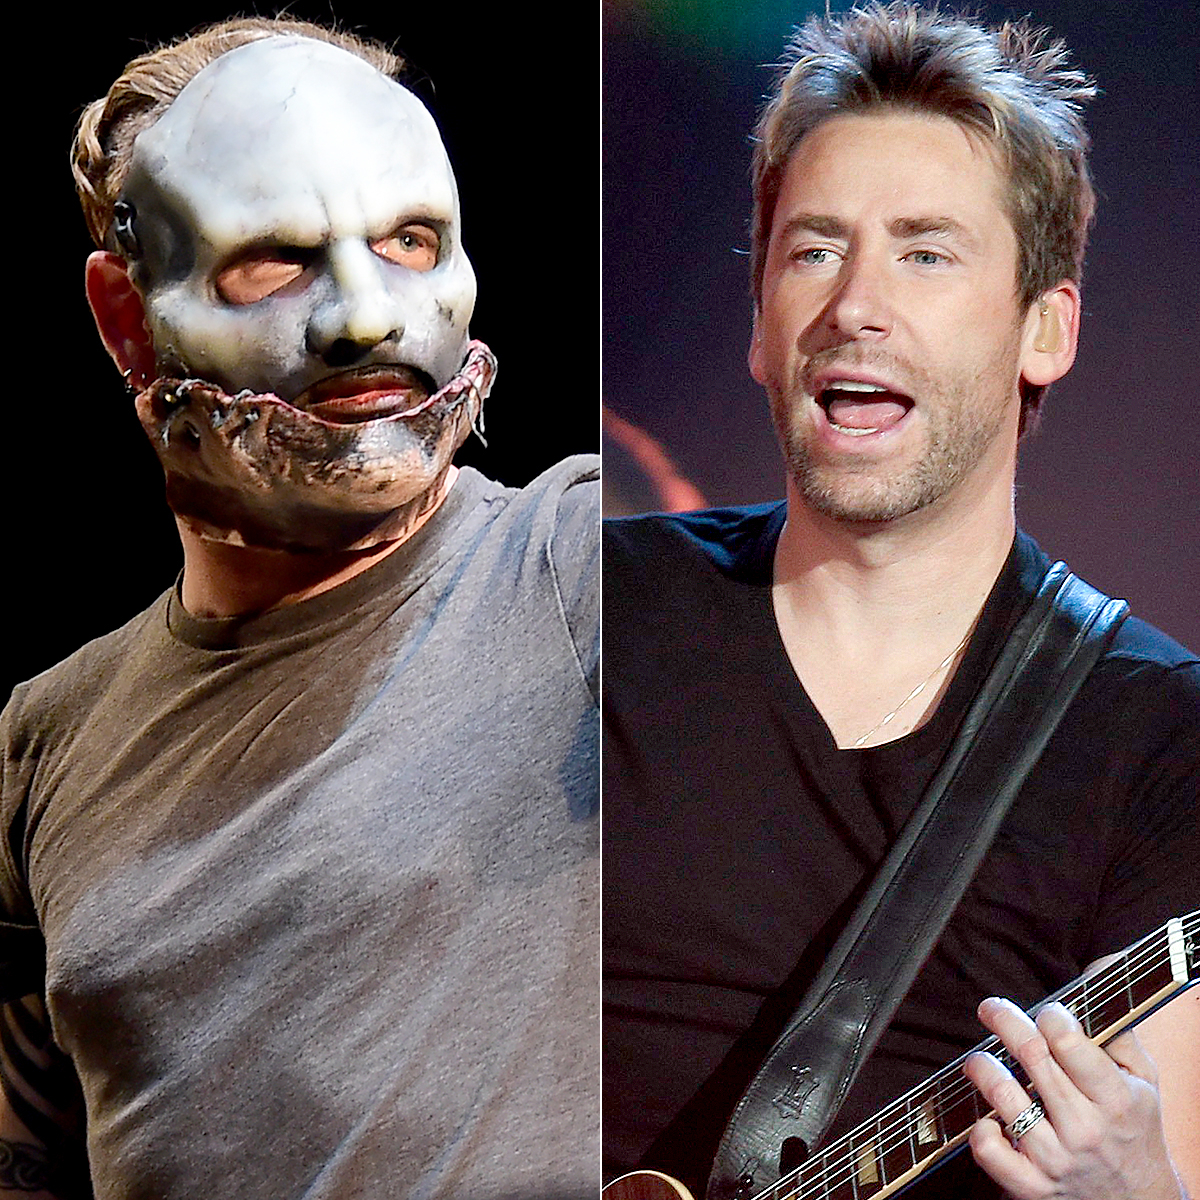 Corey Taylor of Slipknot and Nickelback of Chad Kroeger